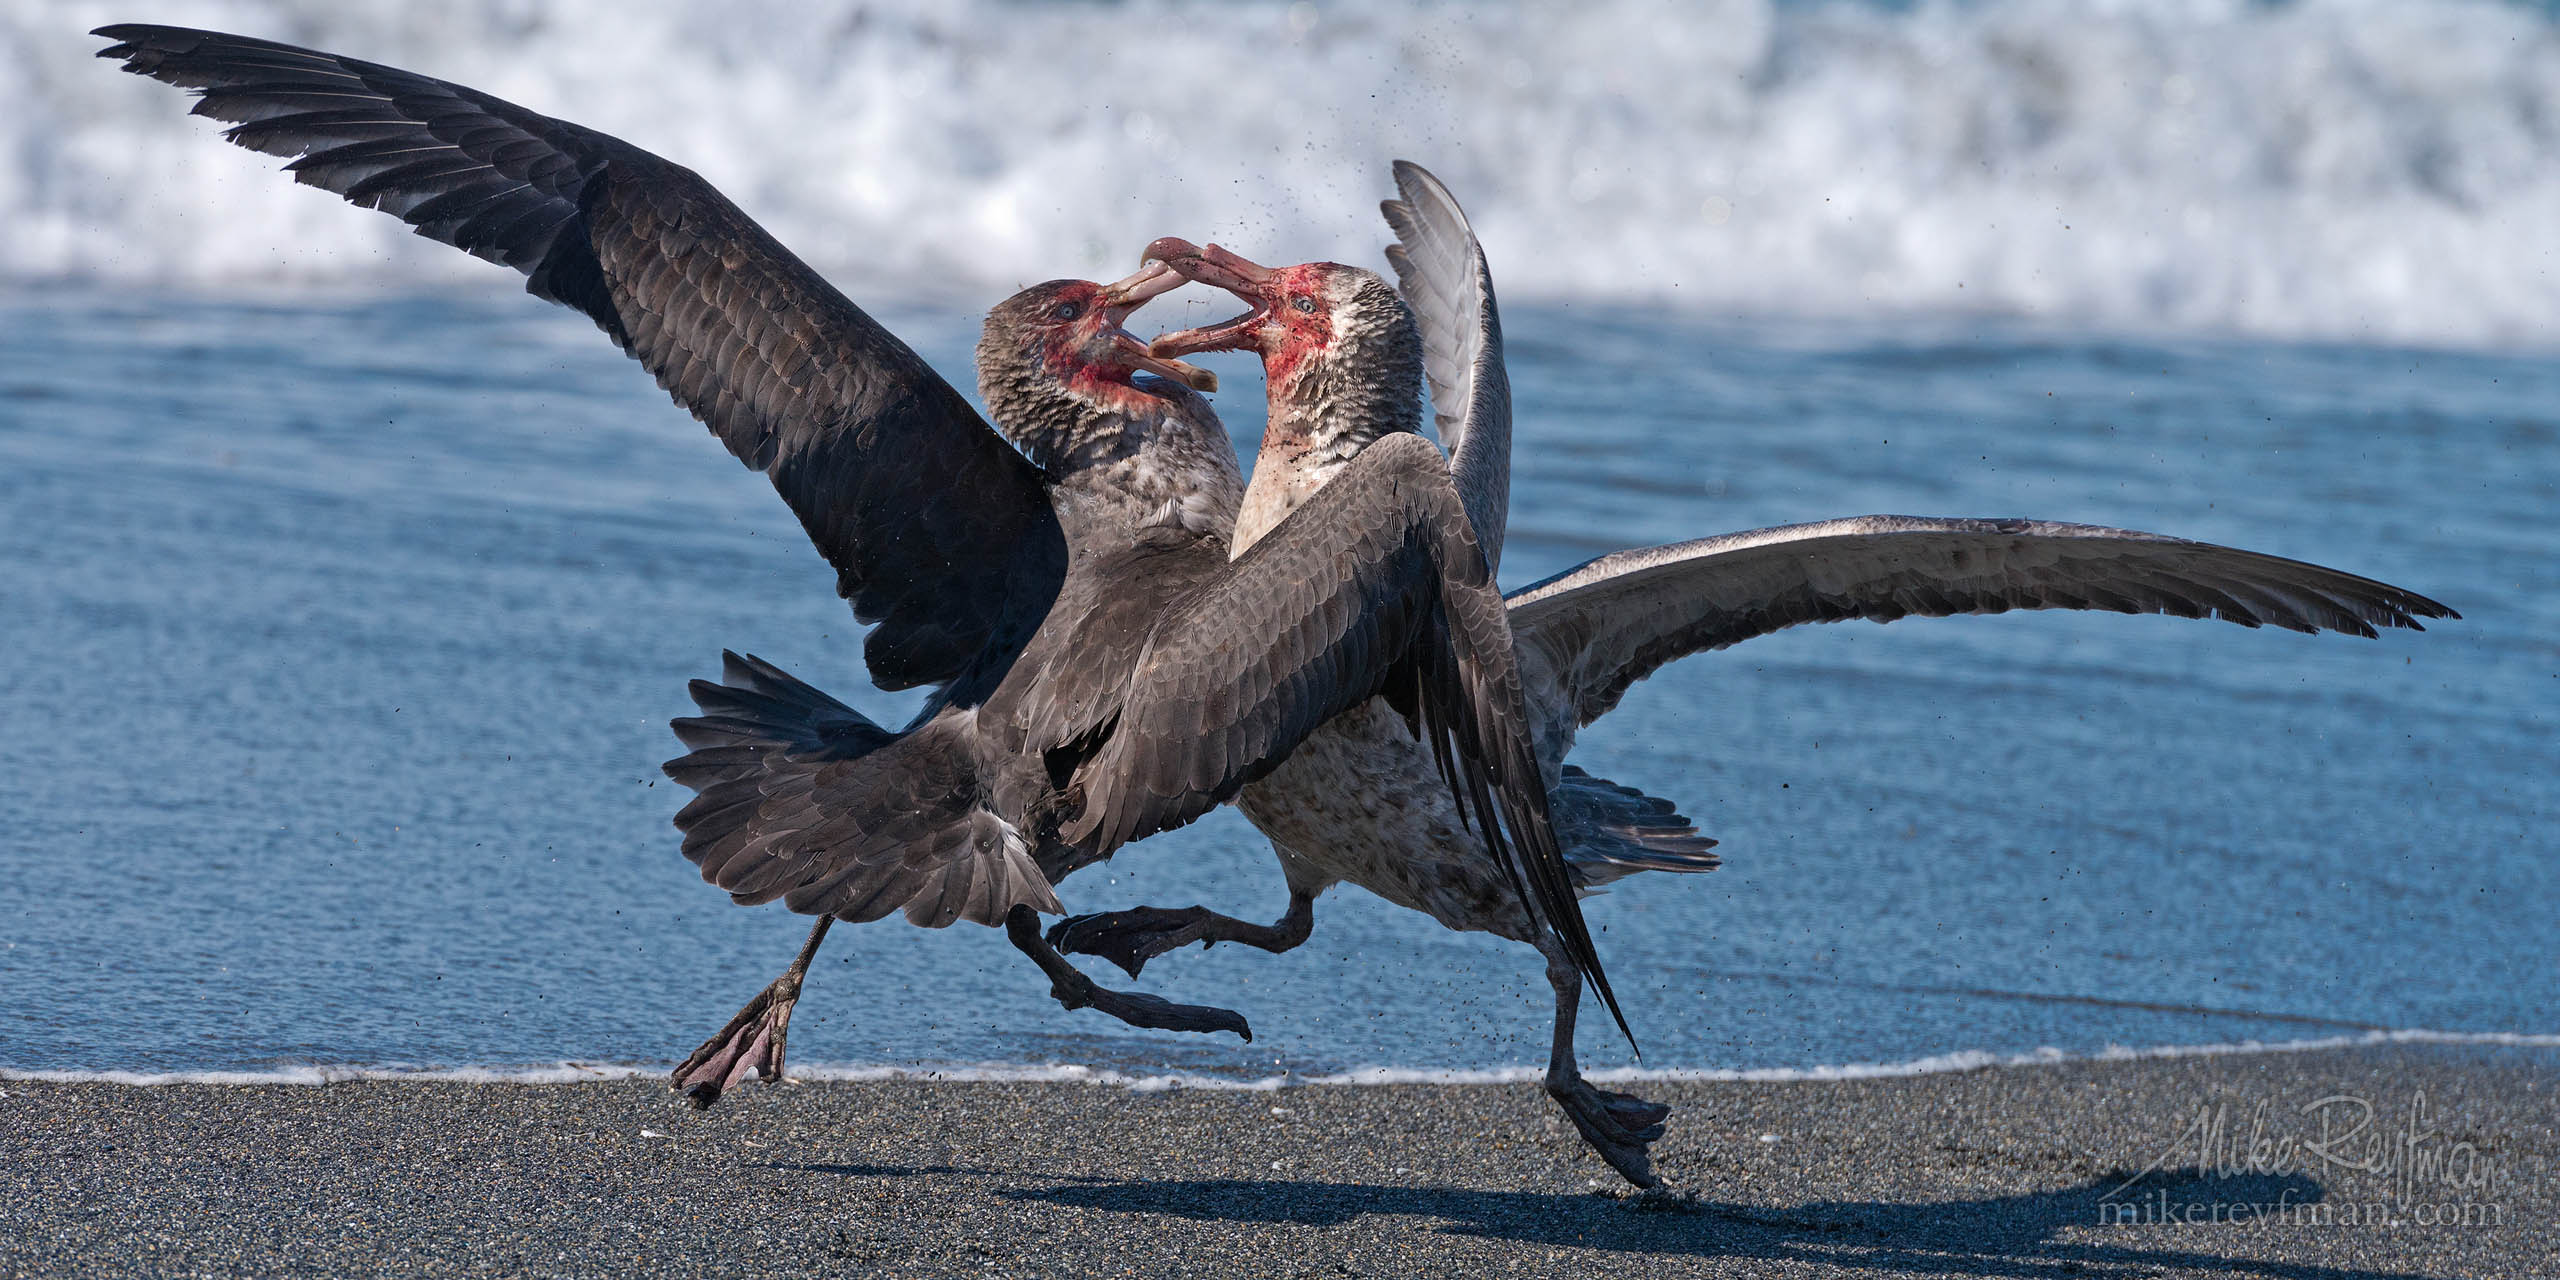 Clash of the Giants. Antarctic Giant Petrels (Macronectes giganteus) fighting on St. Andrews Bay, South Georgia, Sub-Antarctic. P12-MRD8A5514 - Selected panoramic images with 2:1 aspect ratio - Mike Reyfman Photography